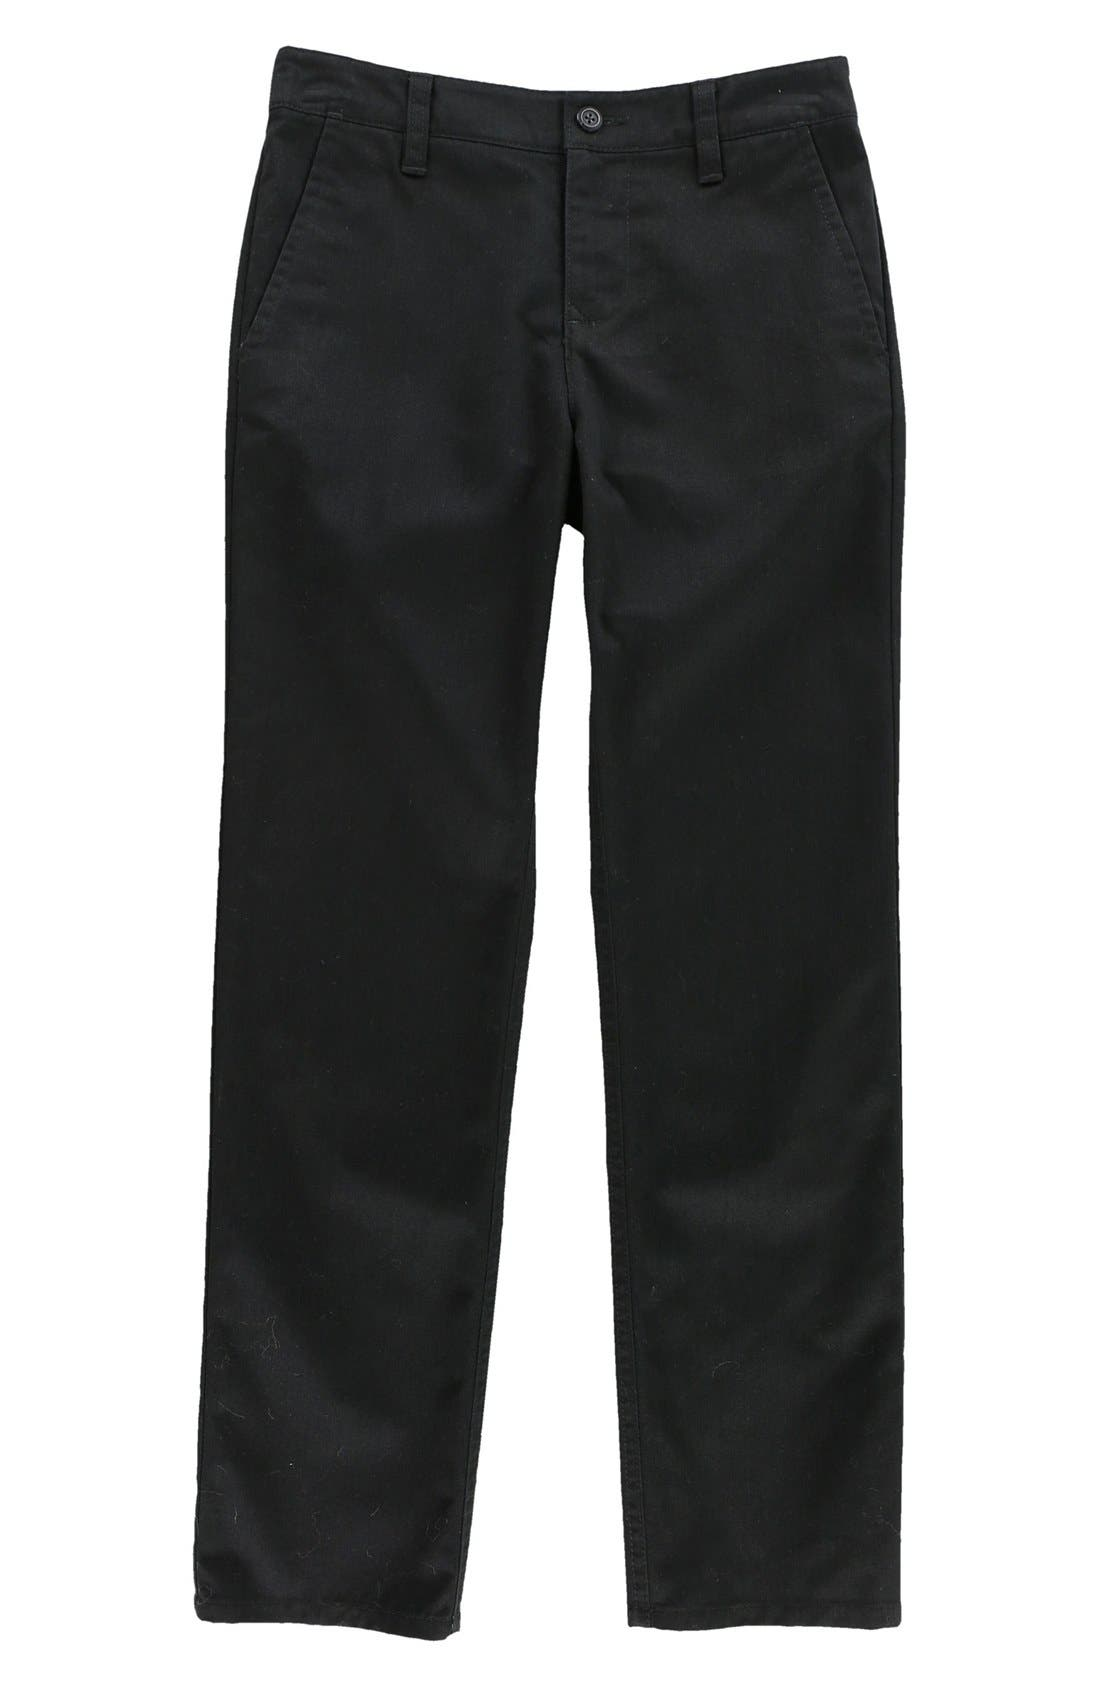 Alternate Image 1 Selected - O'Neill Contact Straight Leg Twill Pants (Toddler Boys)